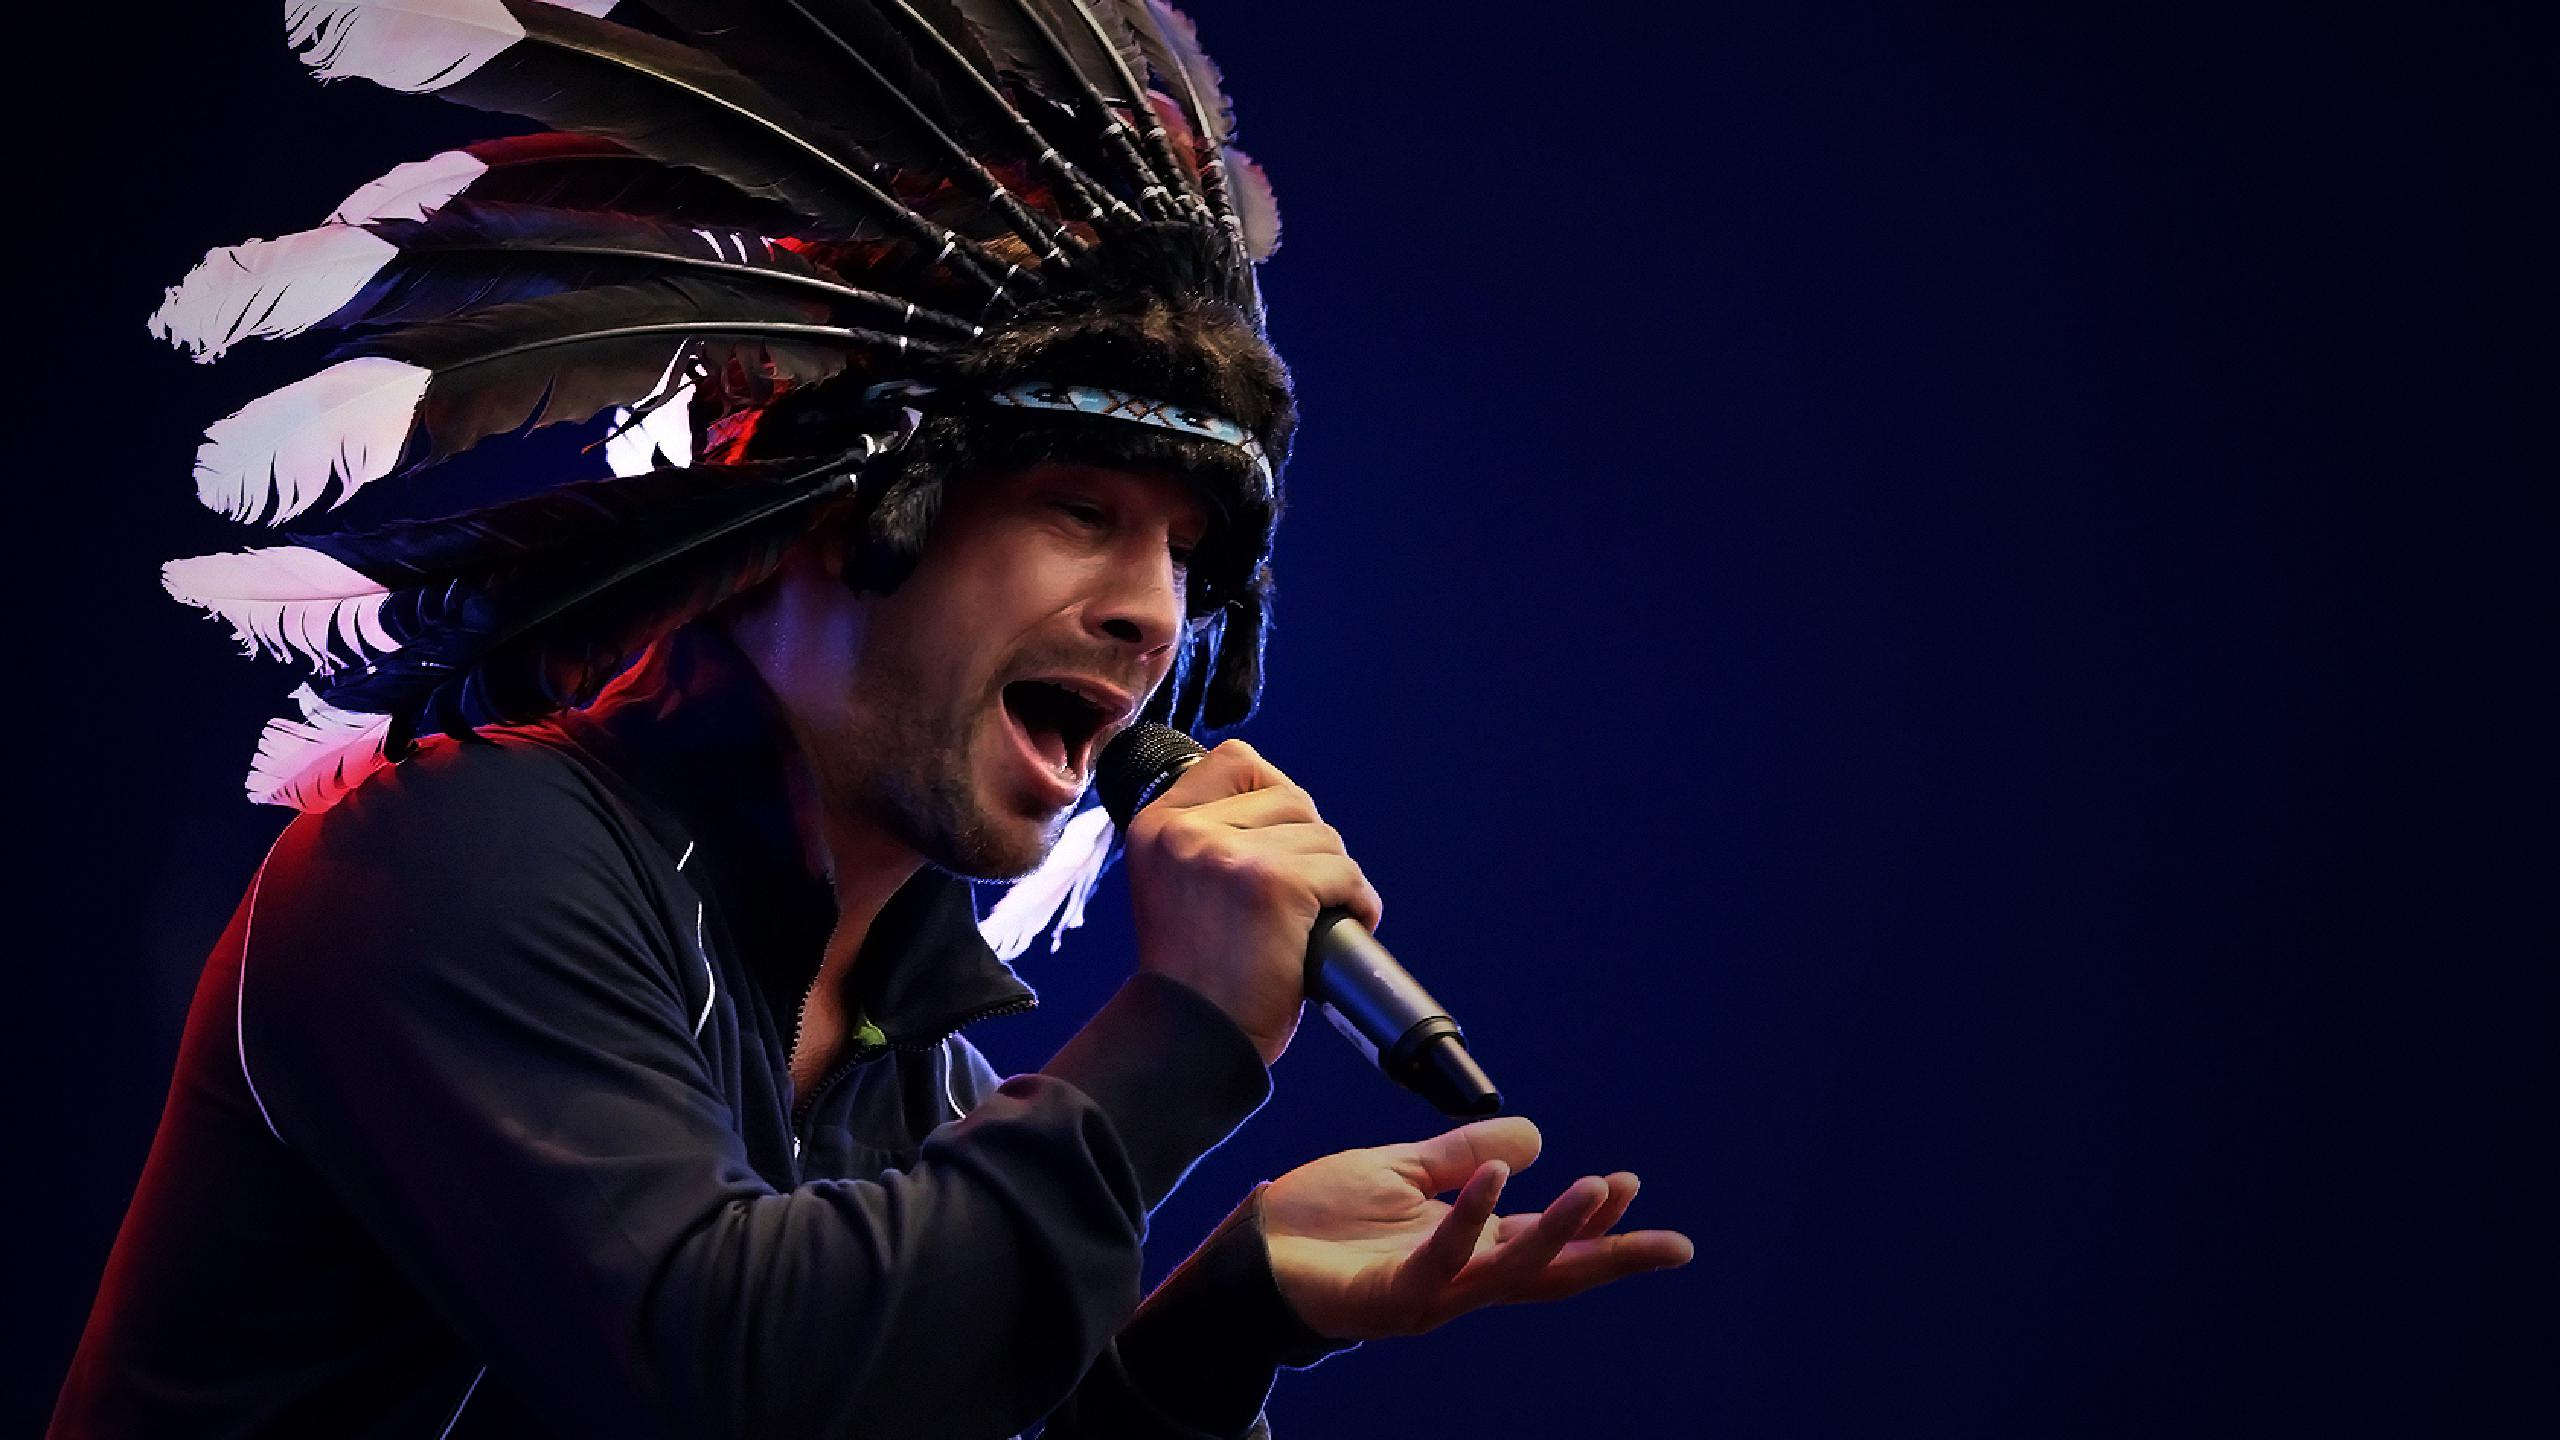 Jamiroquai Tour 2020 Jamiroquai tour dates 2019 2020. Jamiroquai tickets and concerts